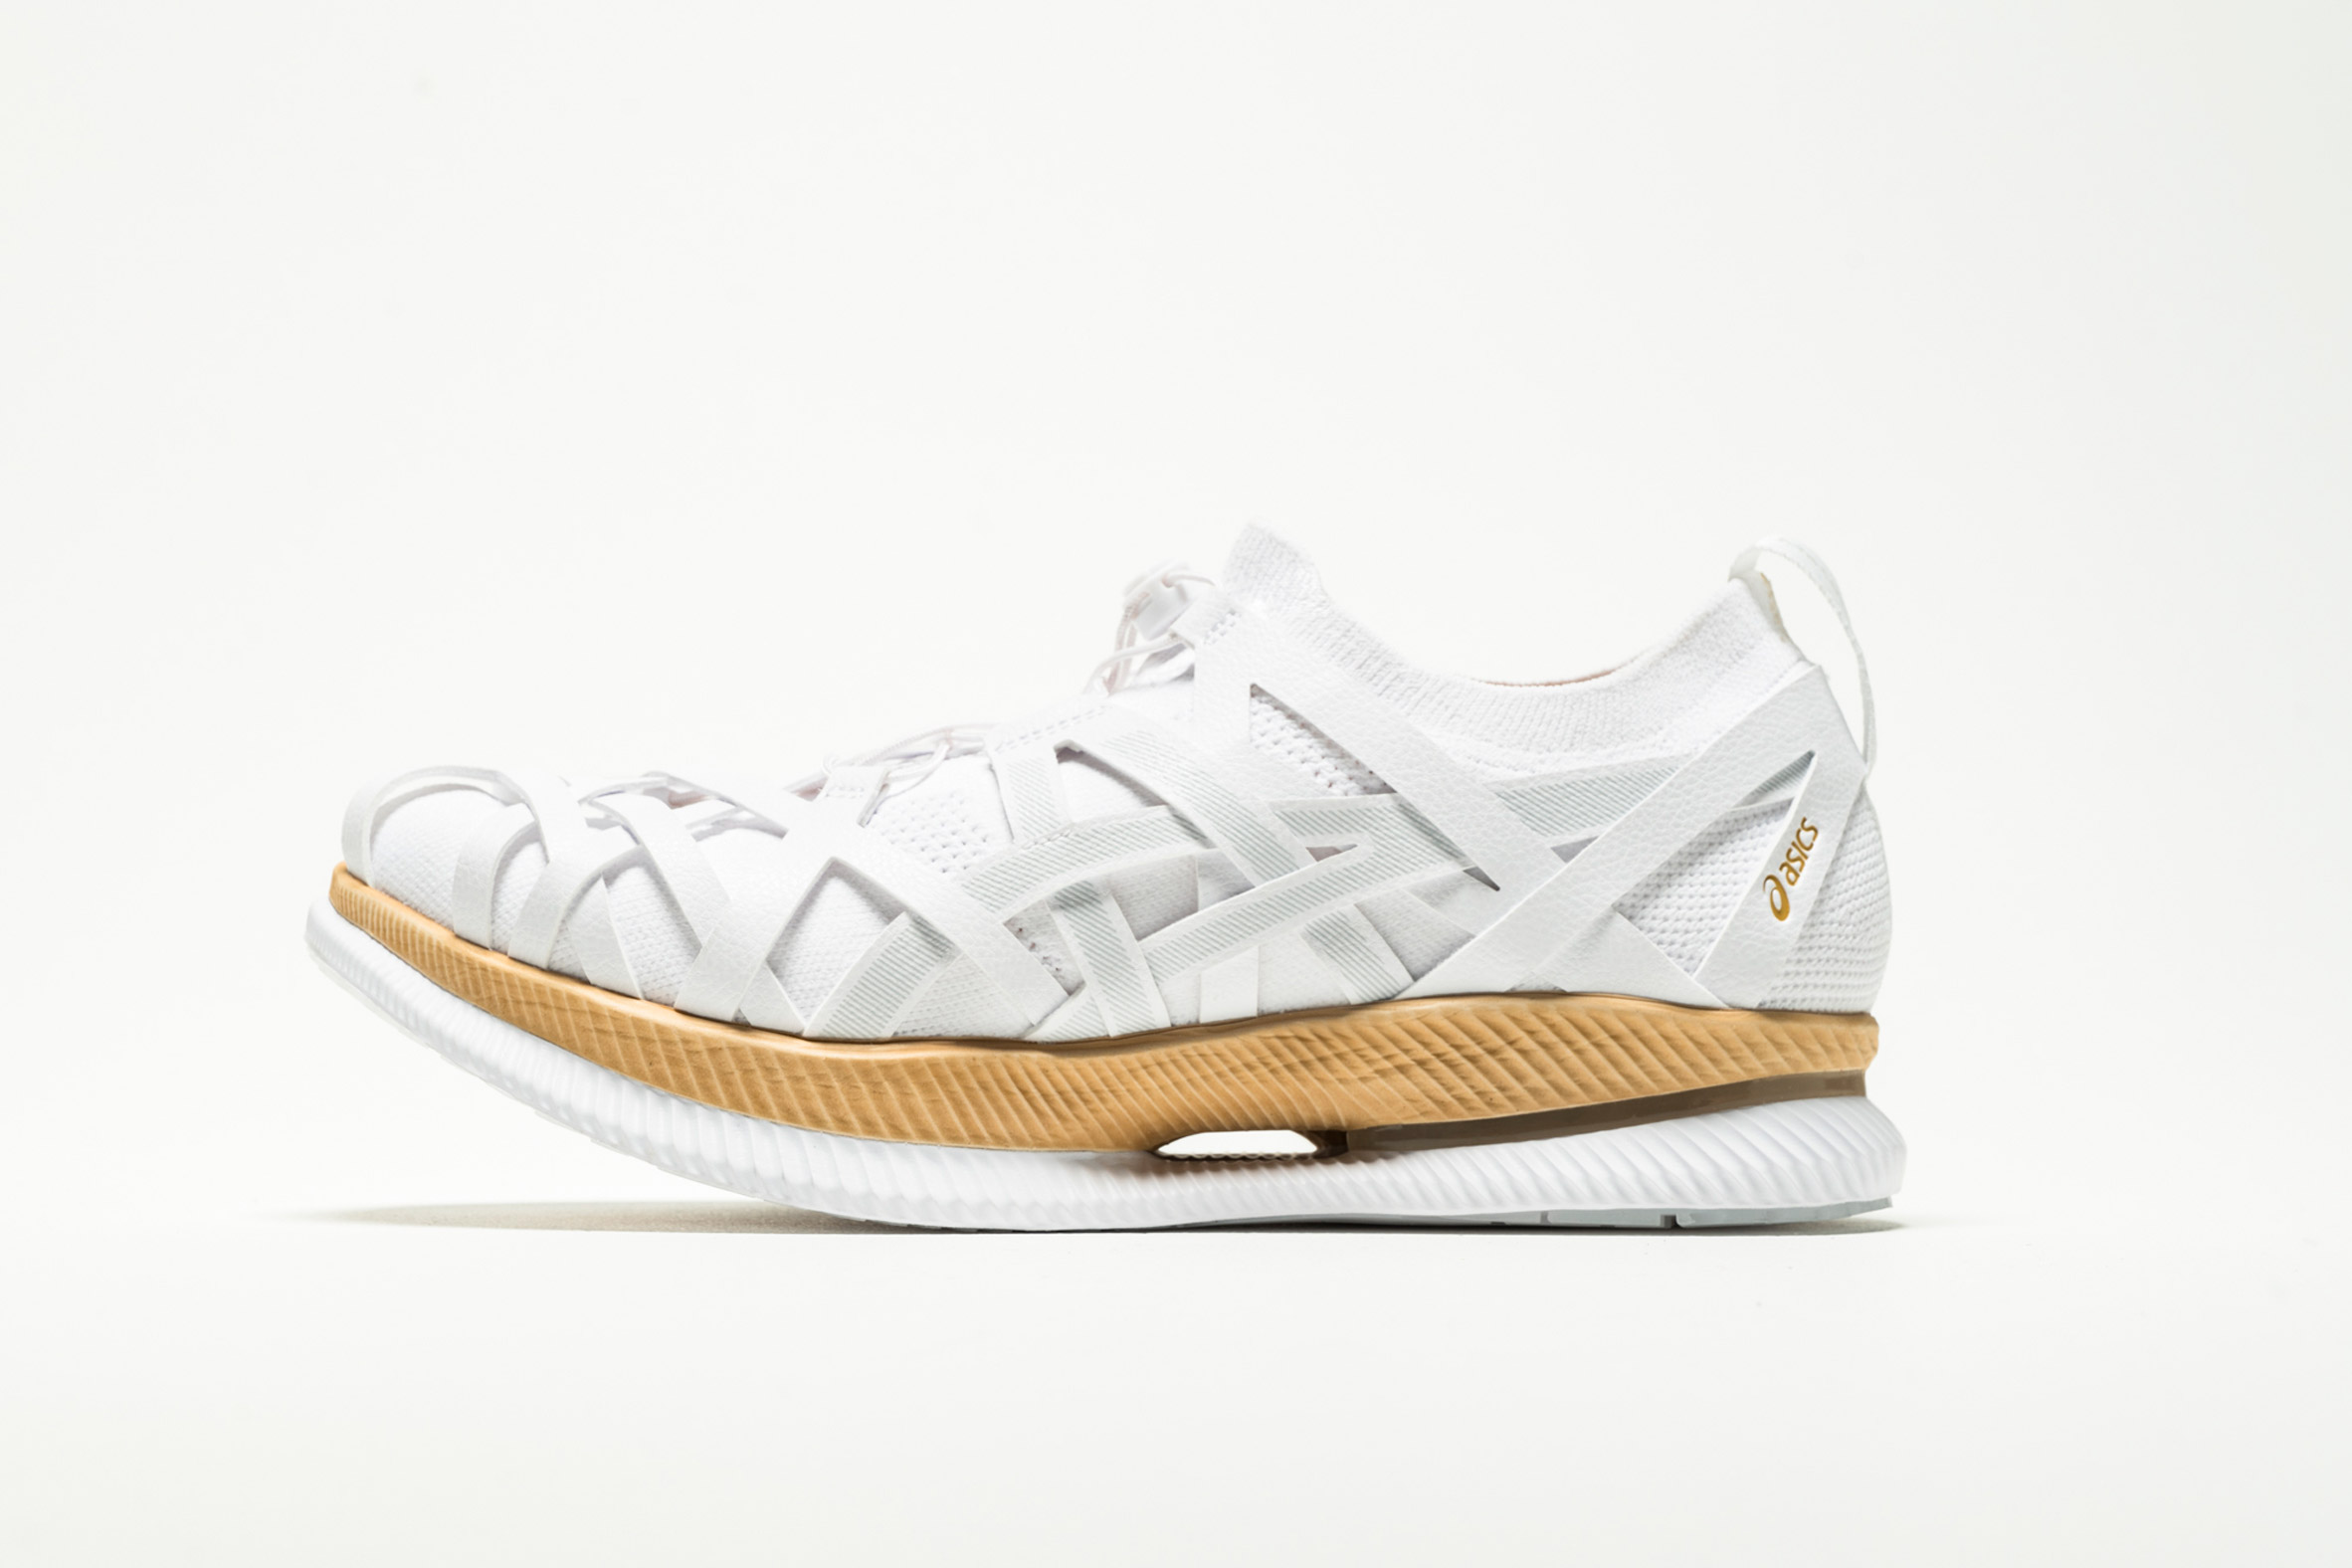 Kengo Kuma unveils first ever trainer design for Asics